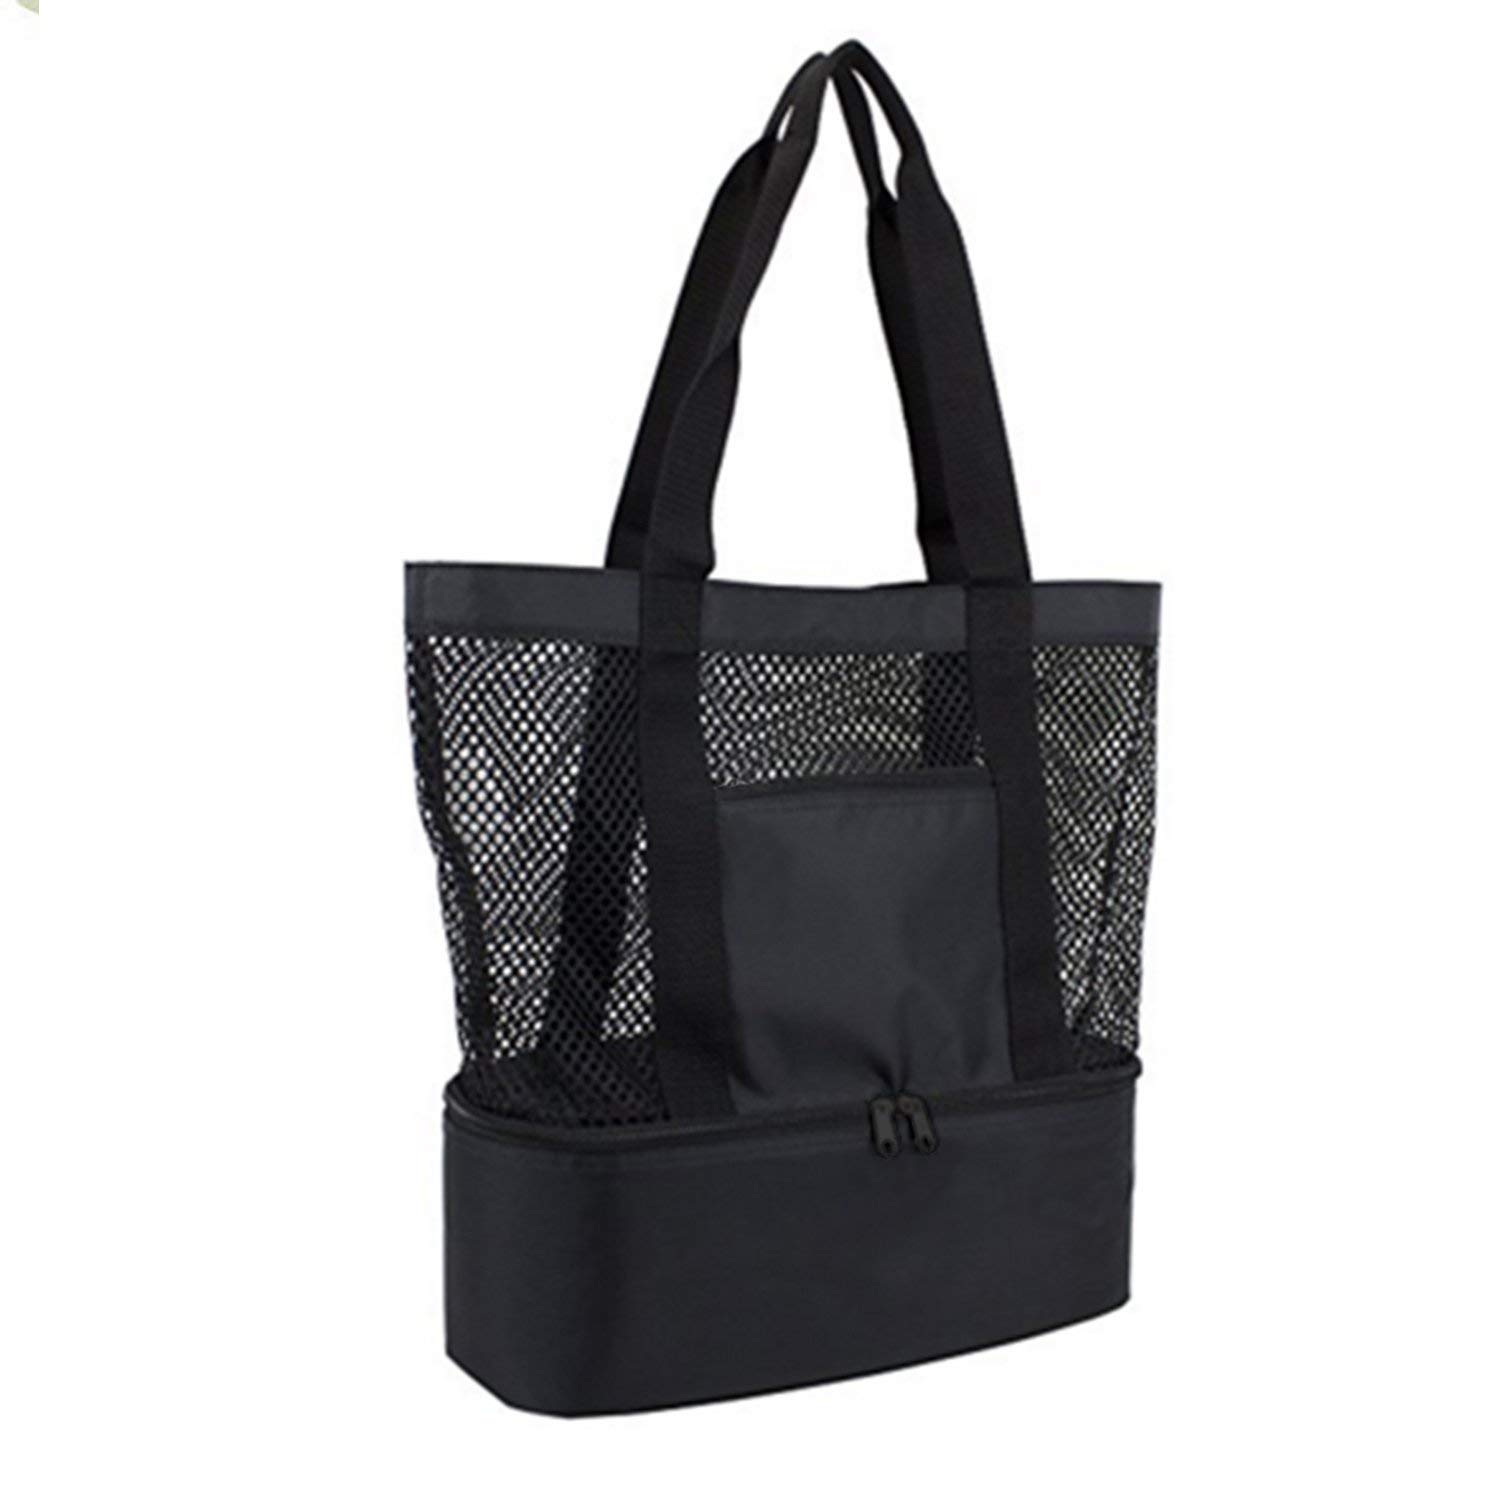 4814f636902e Get Quotations · Mesh Beach Bag Tote Bag Stay Away from Sand for the Beach  with Zipper Top and